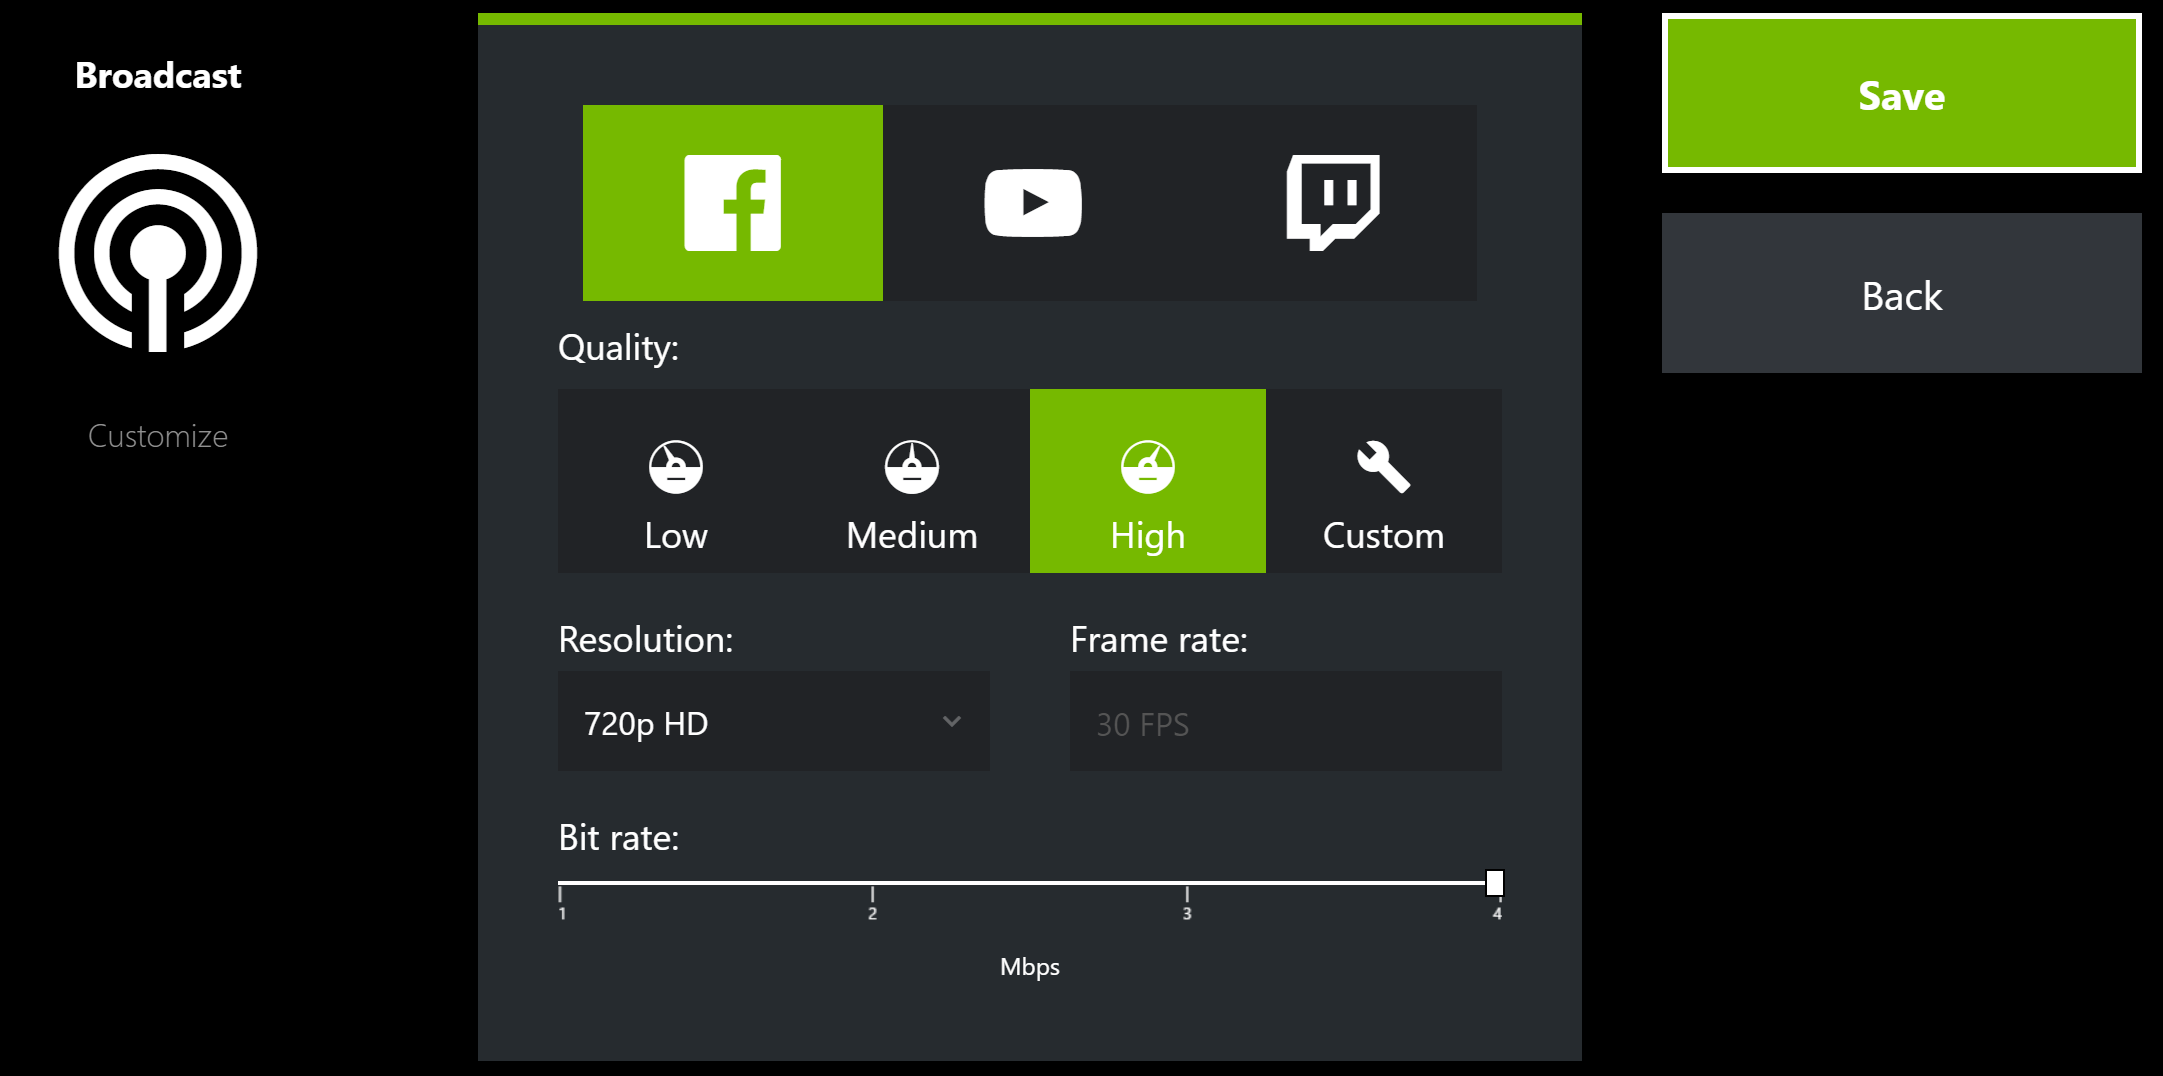 geforce experience cant connect to internet